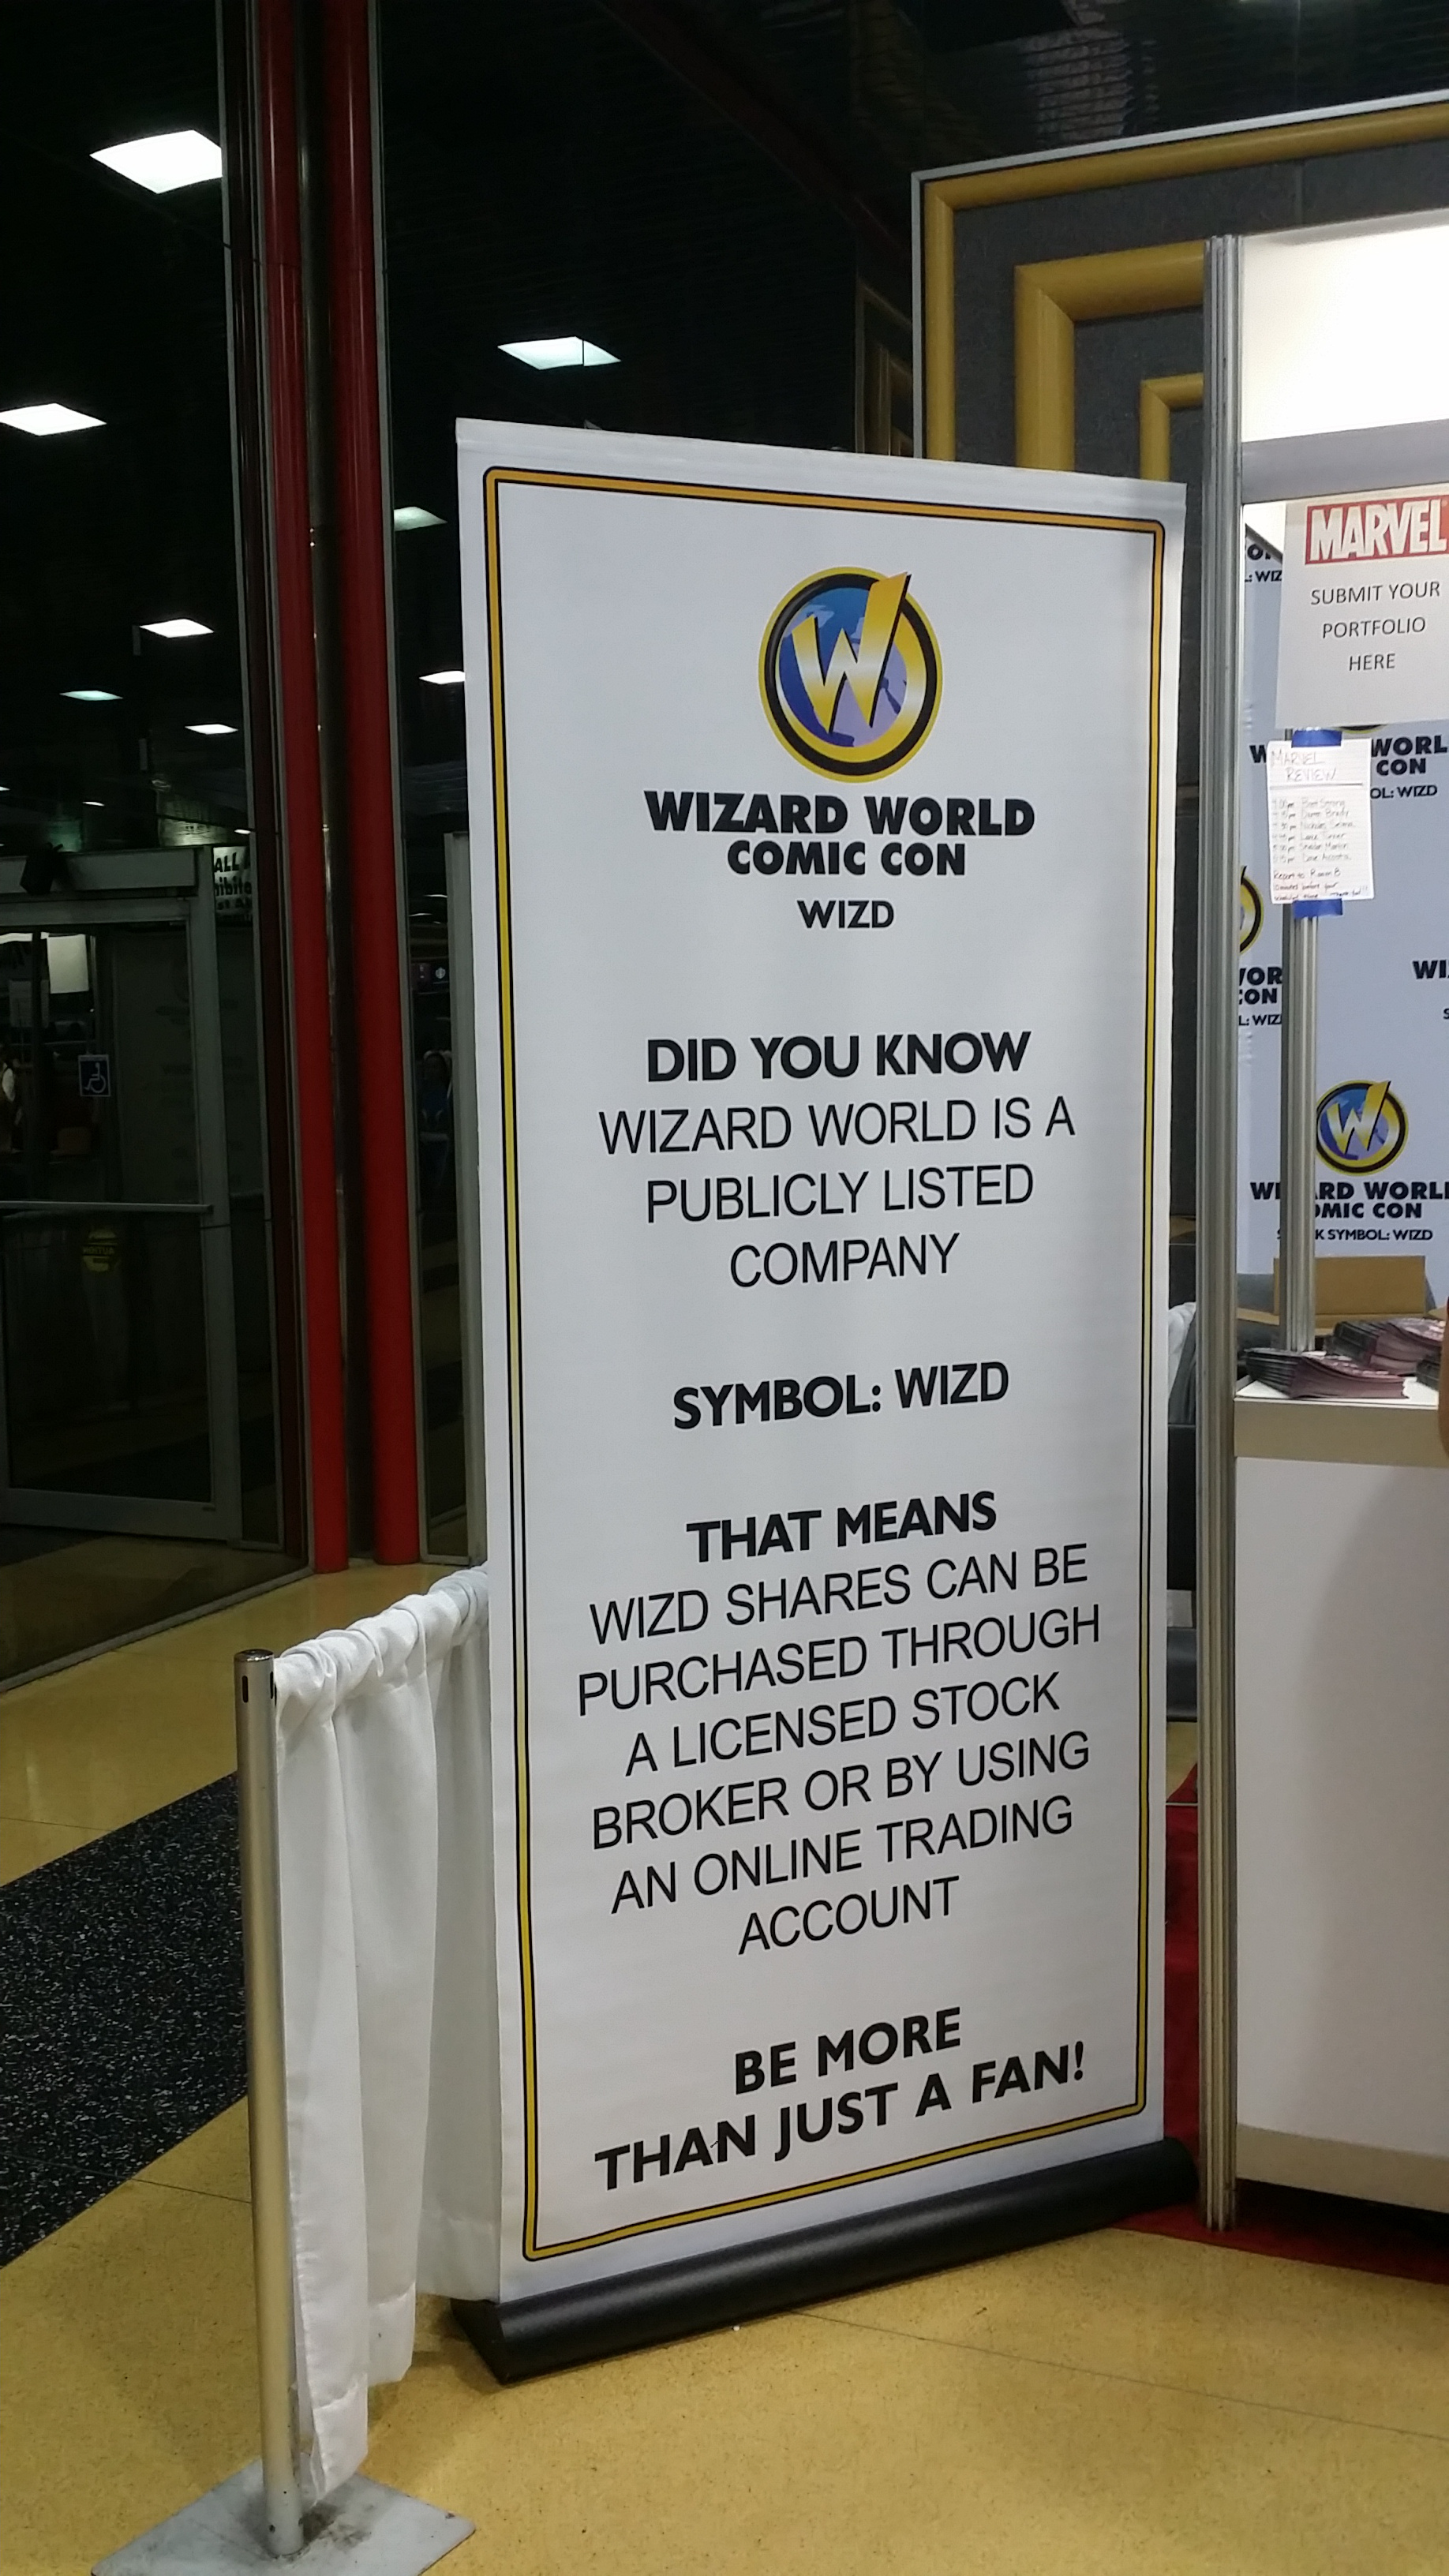 Color photo of a sign up next to a convention booth that reads, in all caps, under the con's logo, 'Wizard World Comic Con. WIZD. Did you know Wizard World is a publicly listed company. Symbol: WIZD. That means WIZD shares can be purchased through a licensed stock broker or by using an online trading account. Be more than just a fan!'